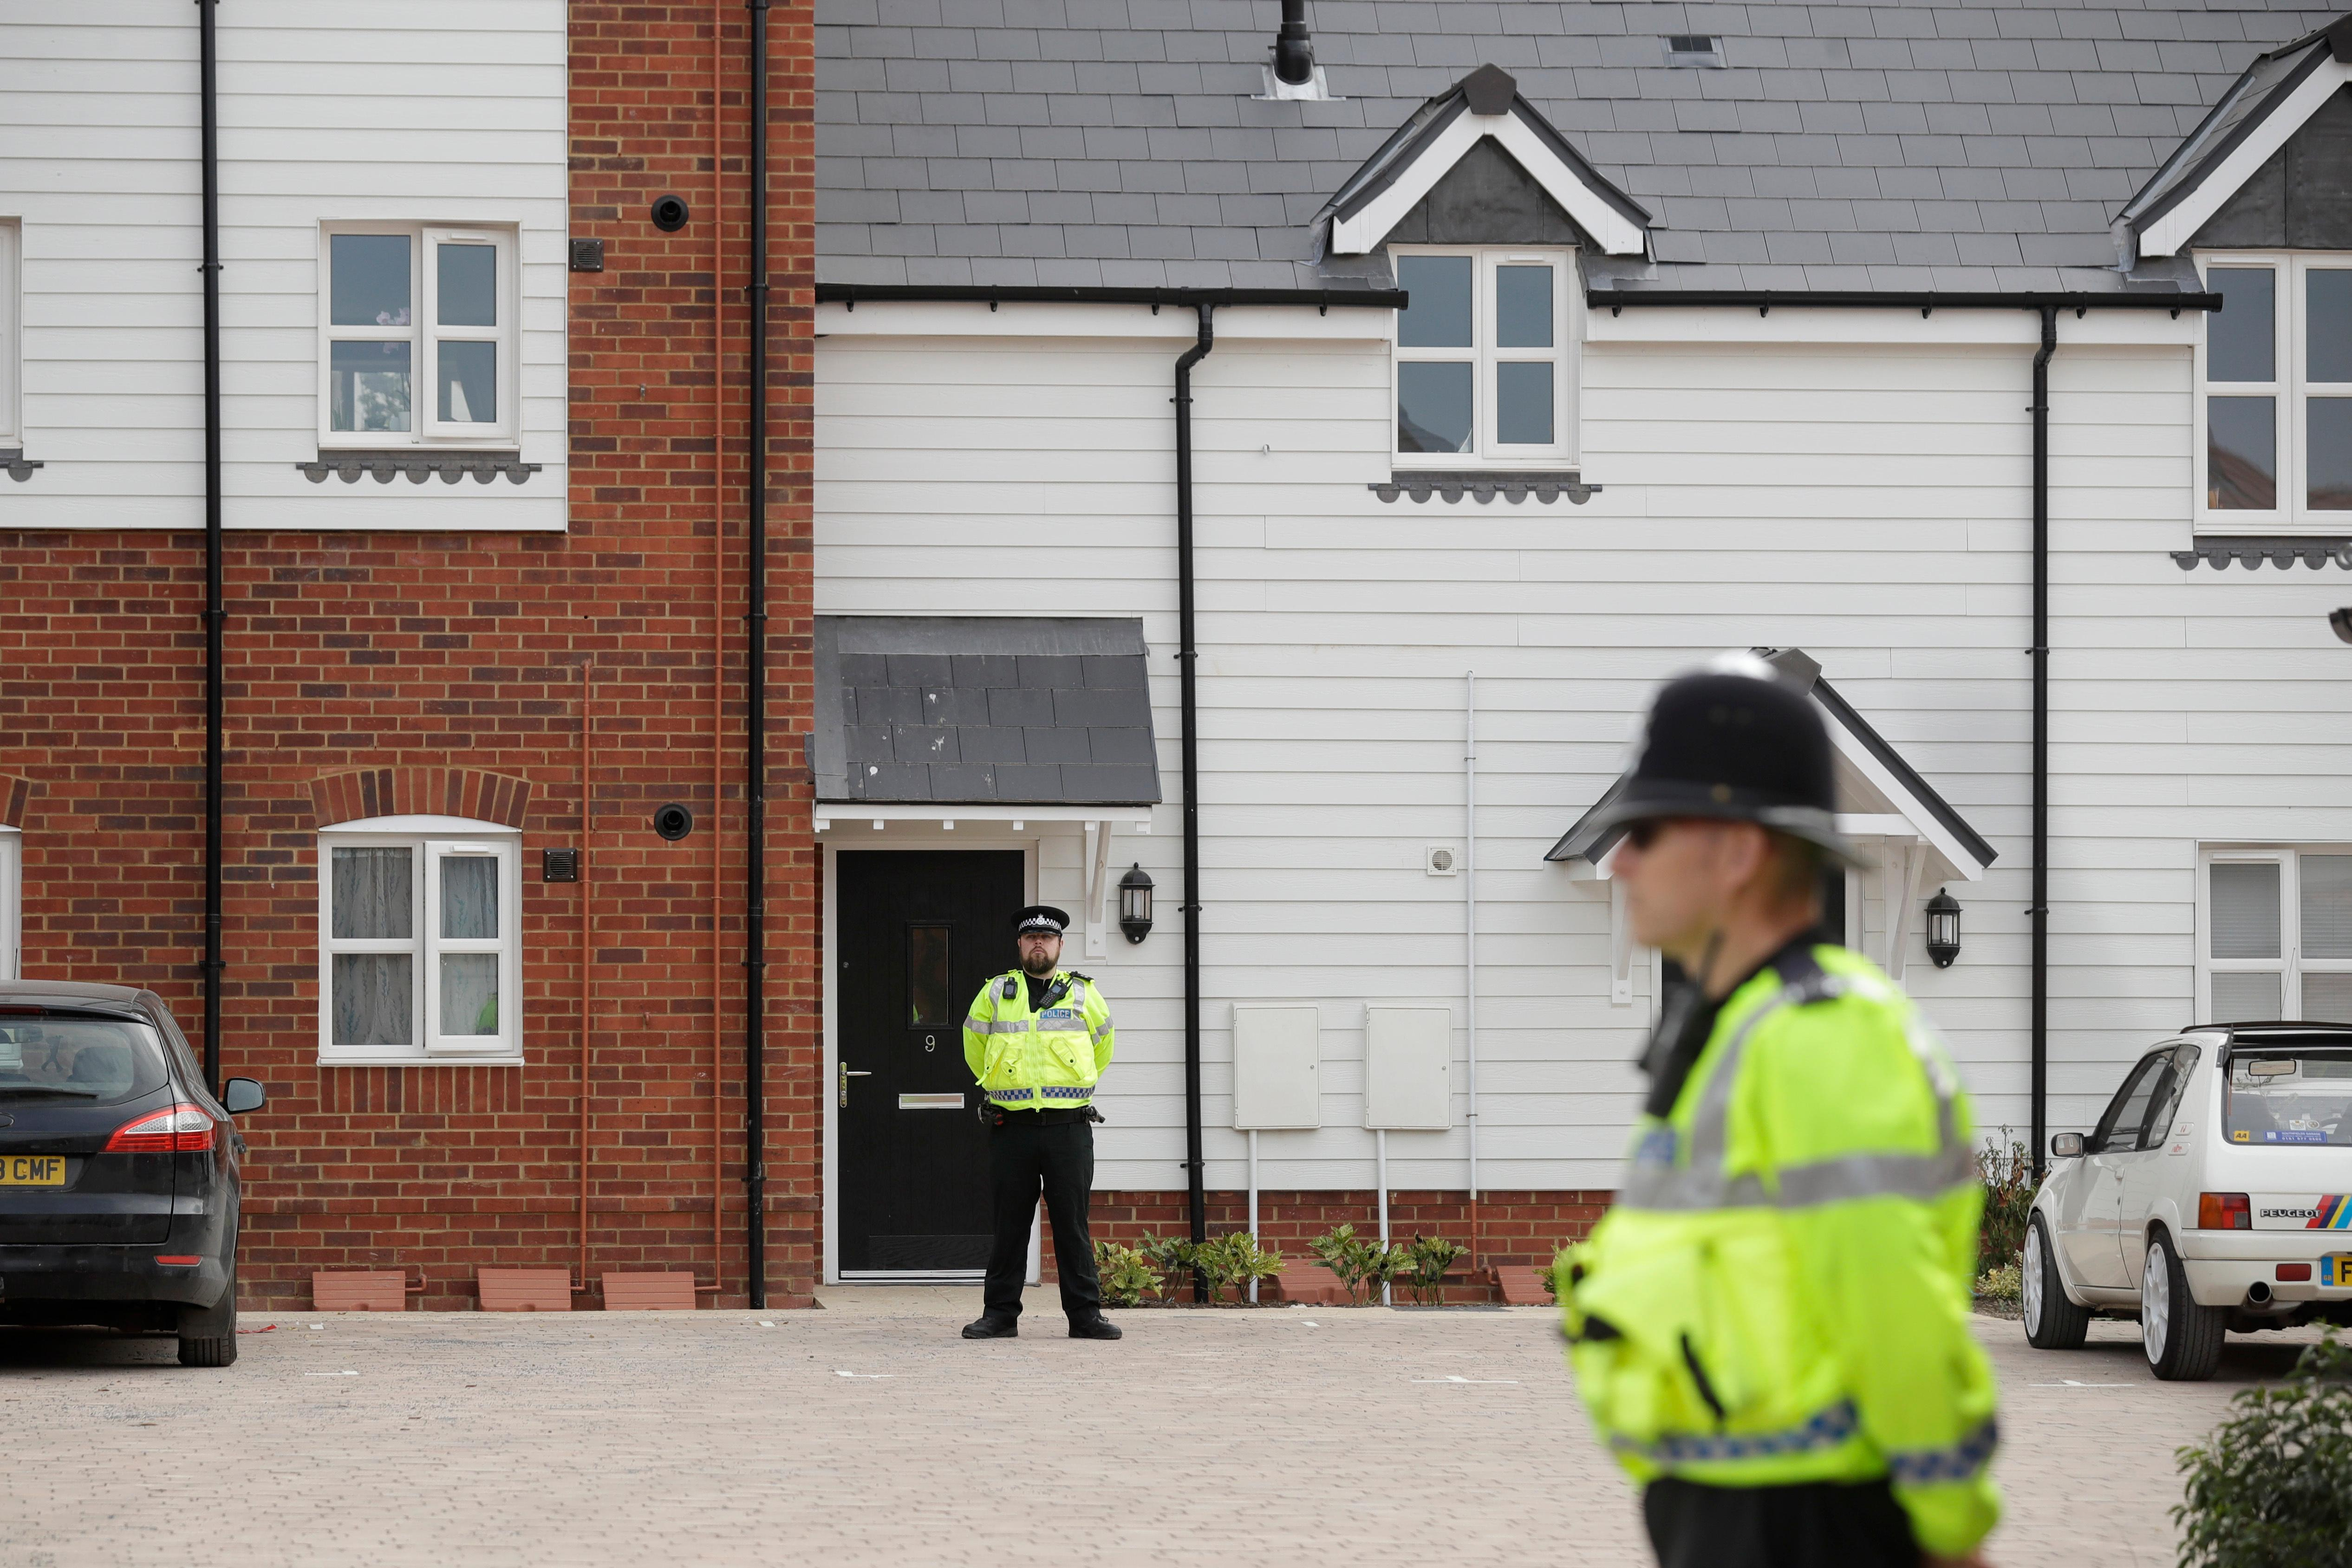 British police officers stand outside a residential property in Amesbury, England, Wednesday, July 4, 2018.  (AP Photo/Matt Dunham)